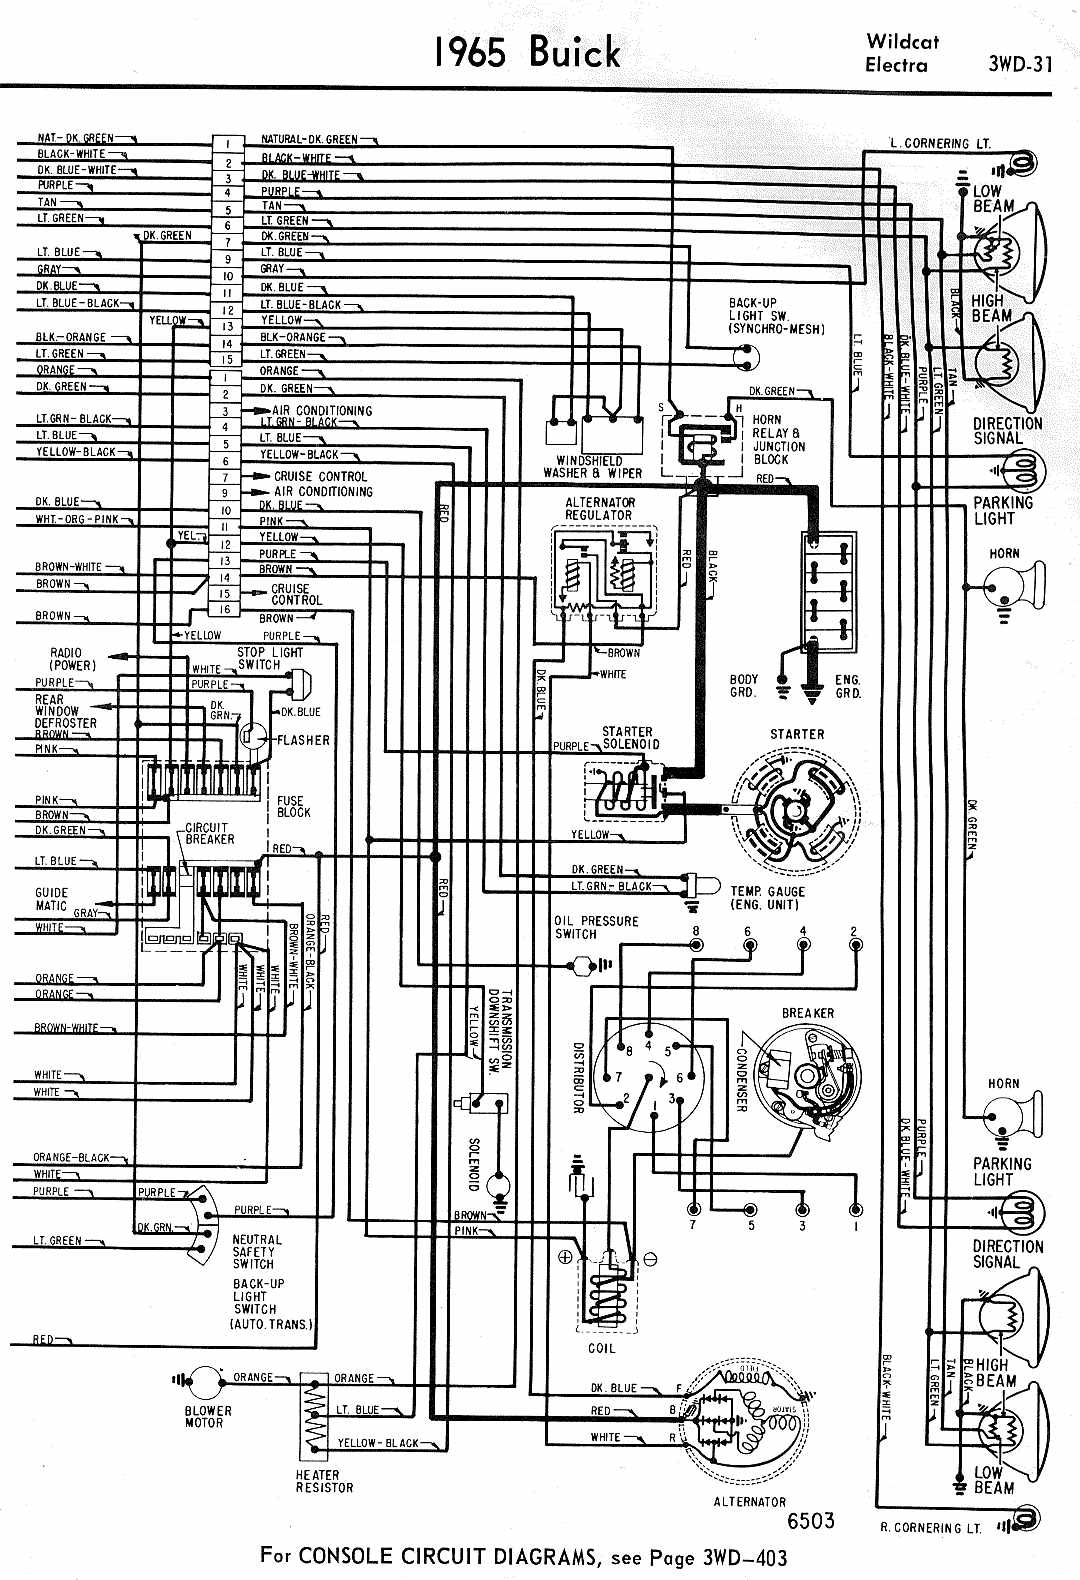 Buick Car Manuals Wiring Diagrams Pdf Fault Codes Volvo Truck Download